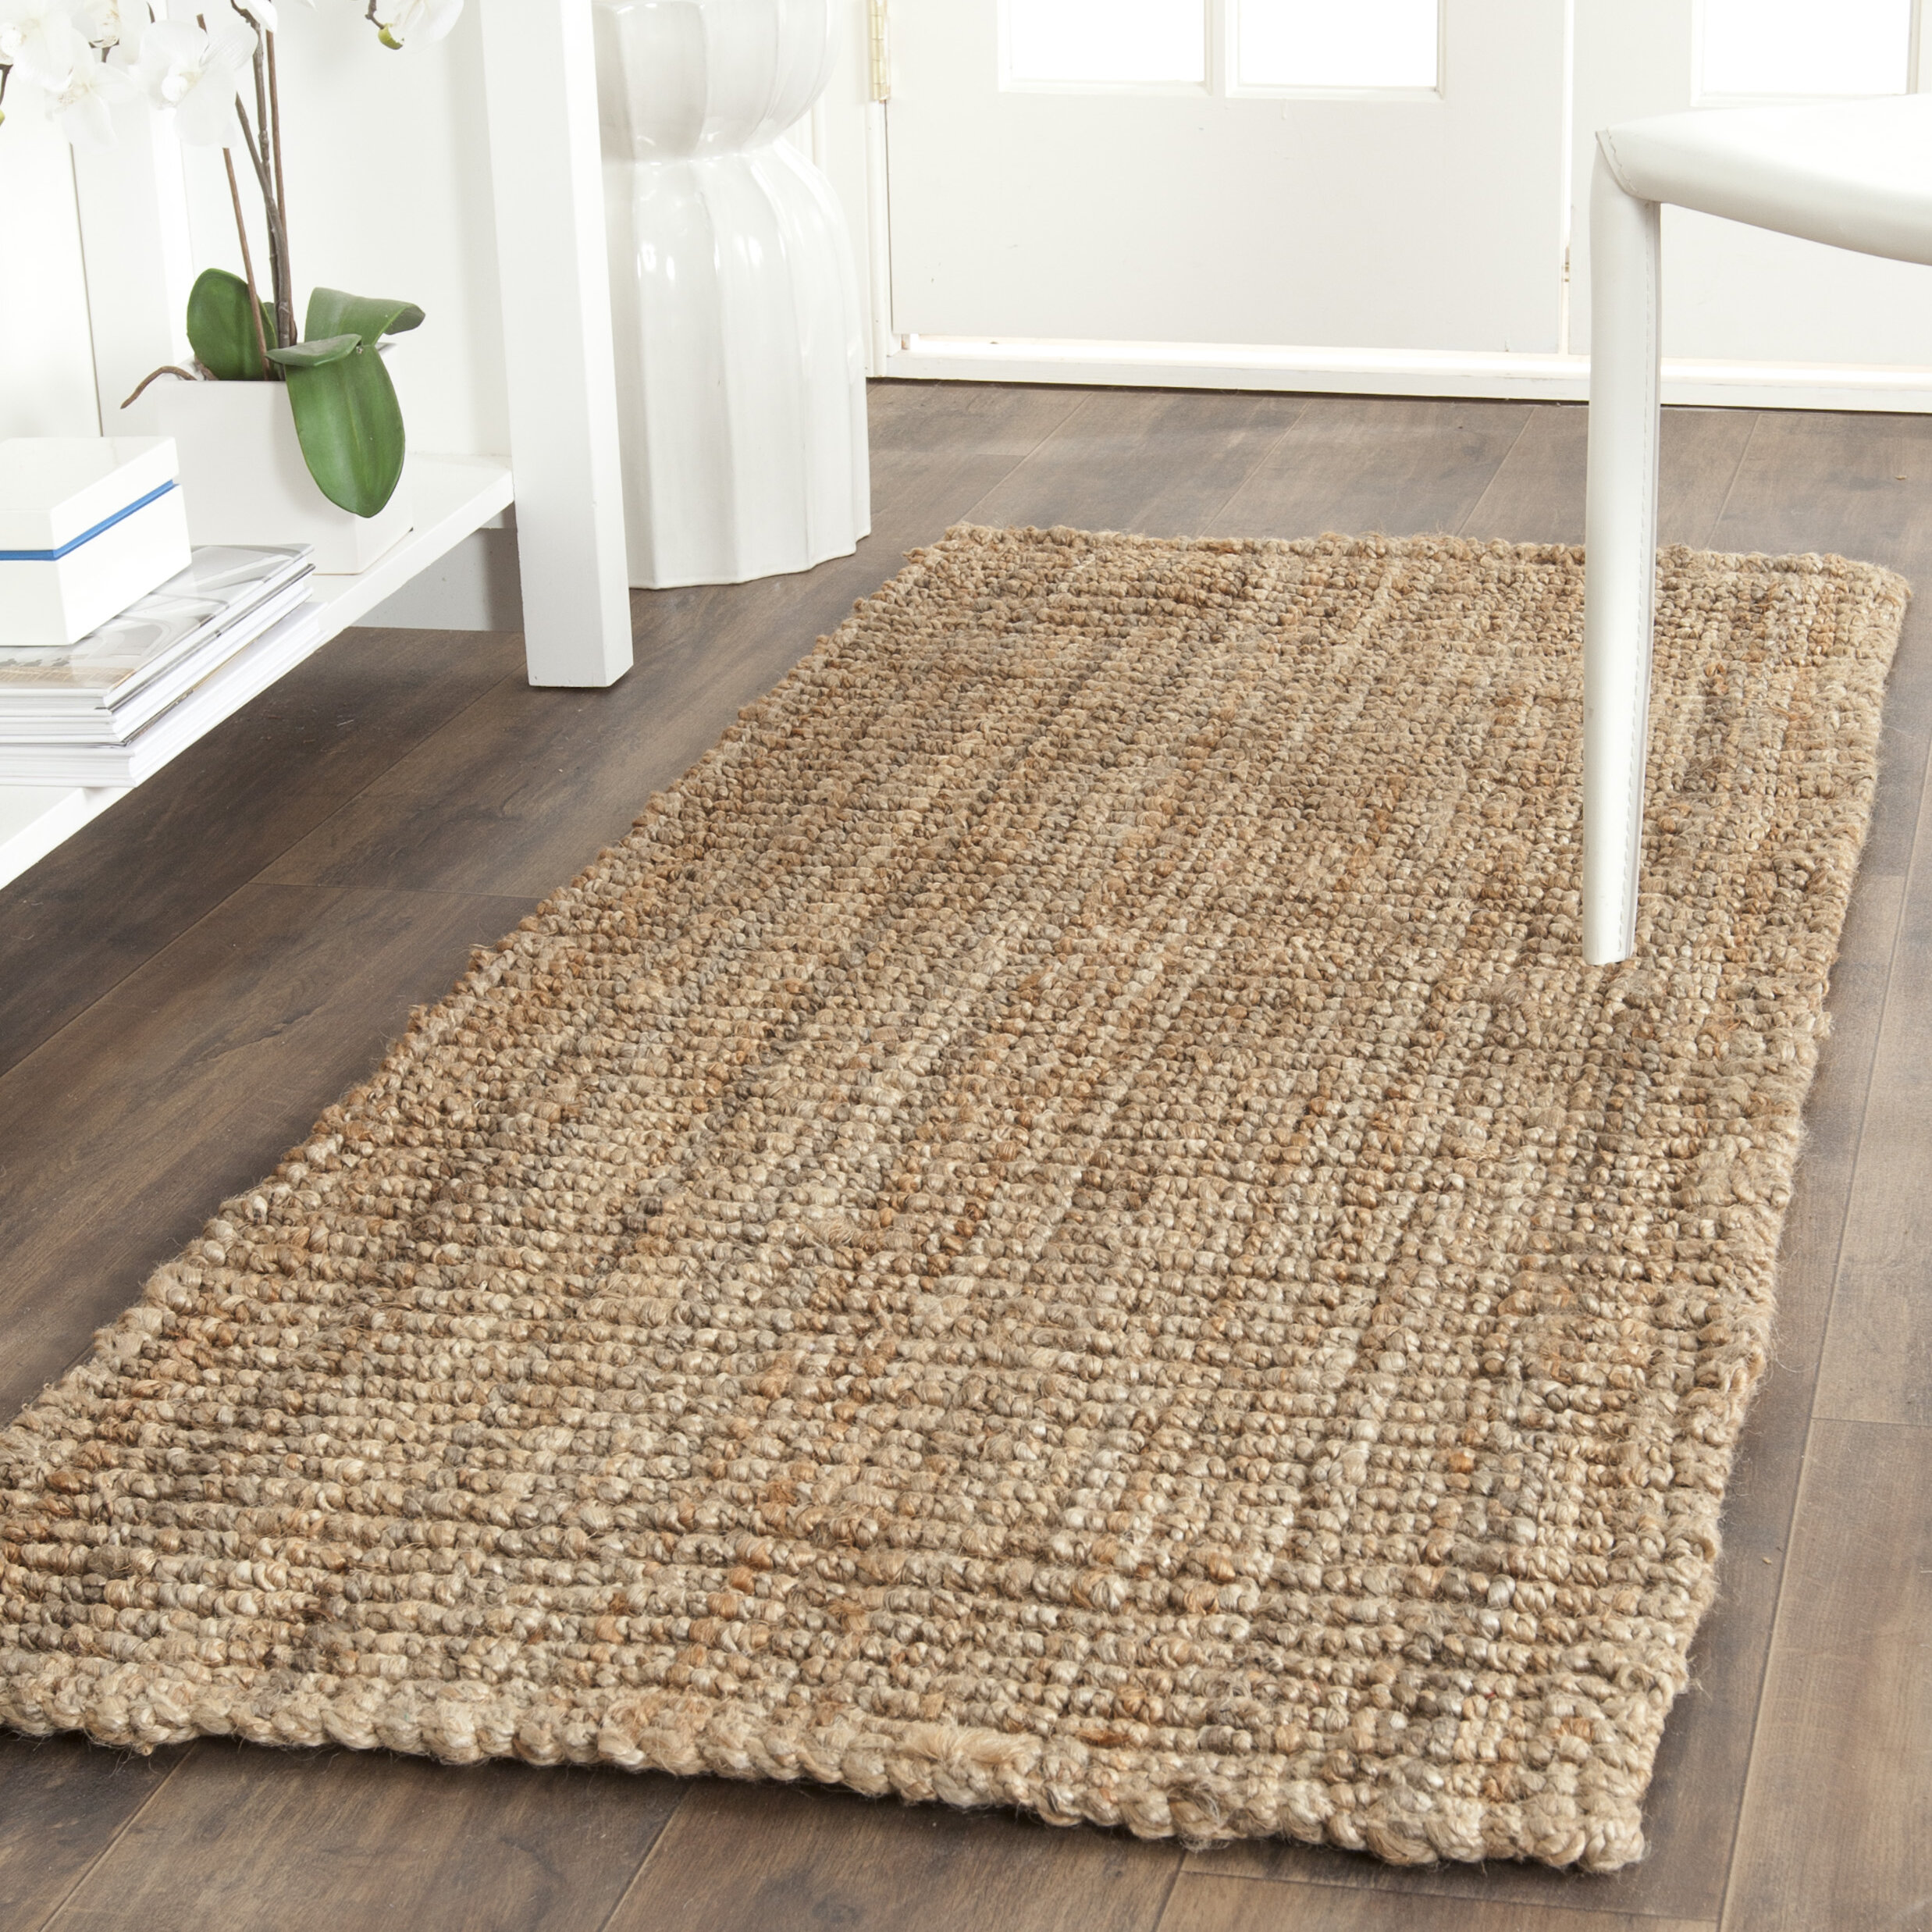 Gaines power loomed natural area rug reviews birch lane